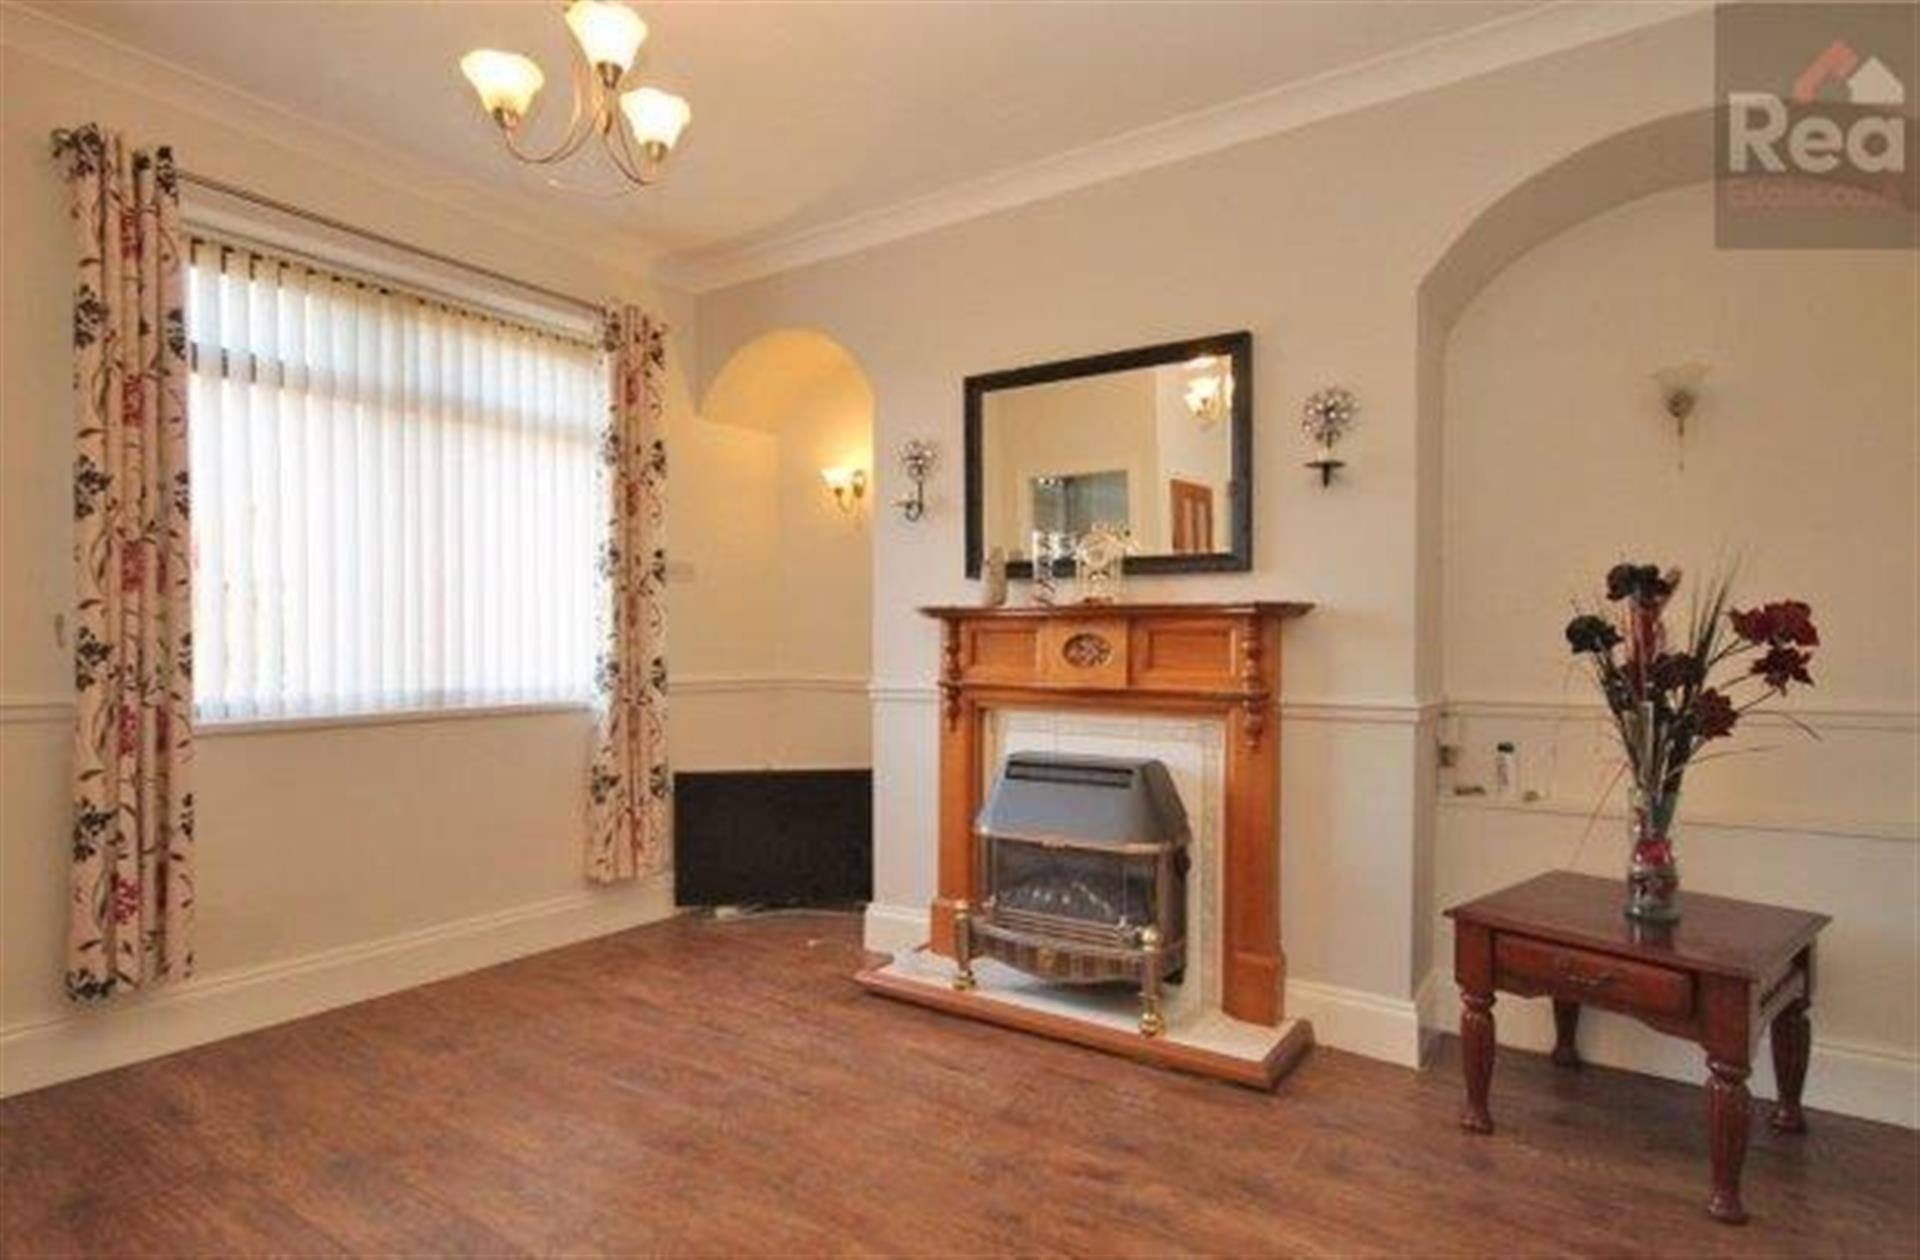 2 bedroom terraced house To Let in West Auckland - photograph 2.